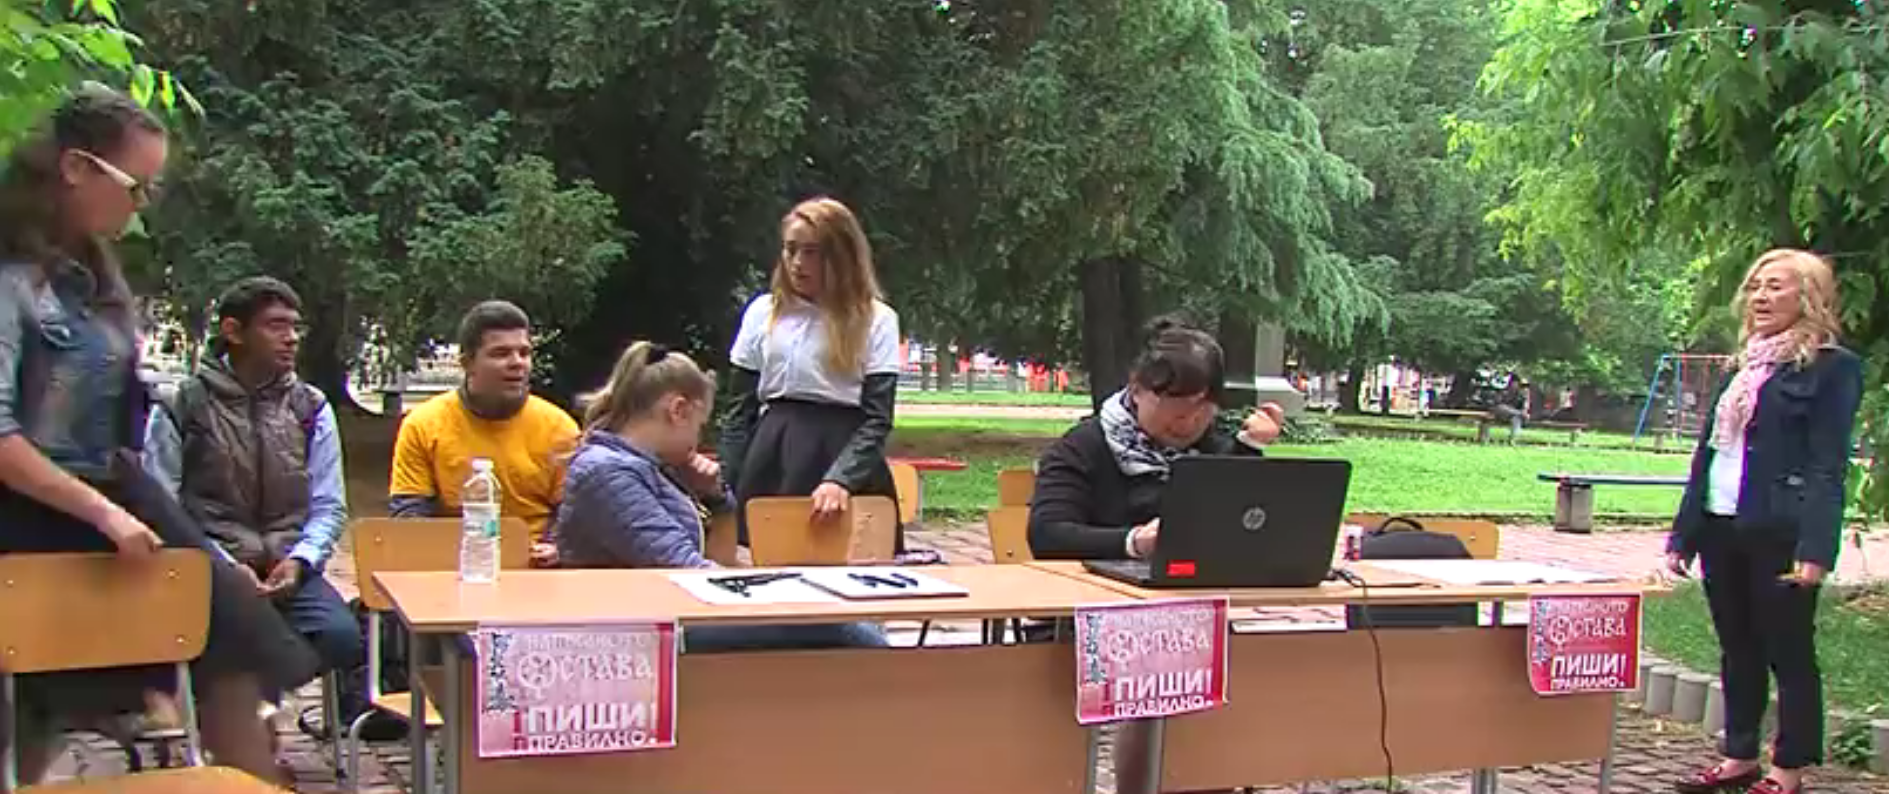 The pupils from Aksakov High School showed how important it is to write correctly